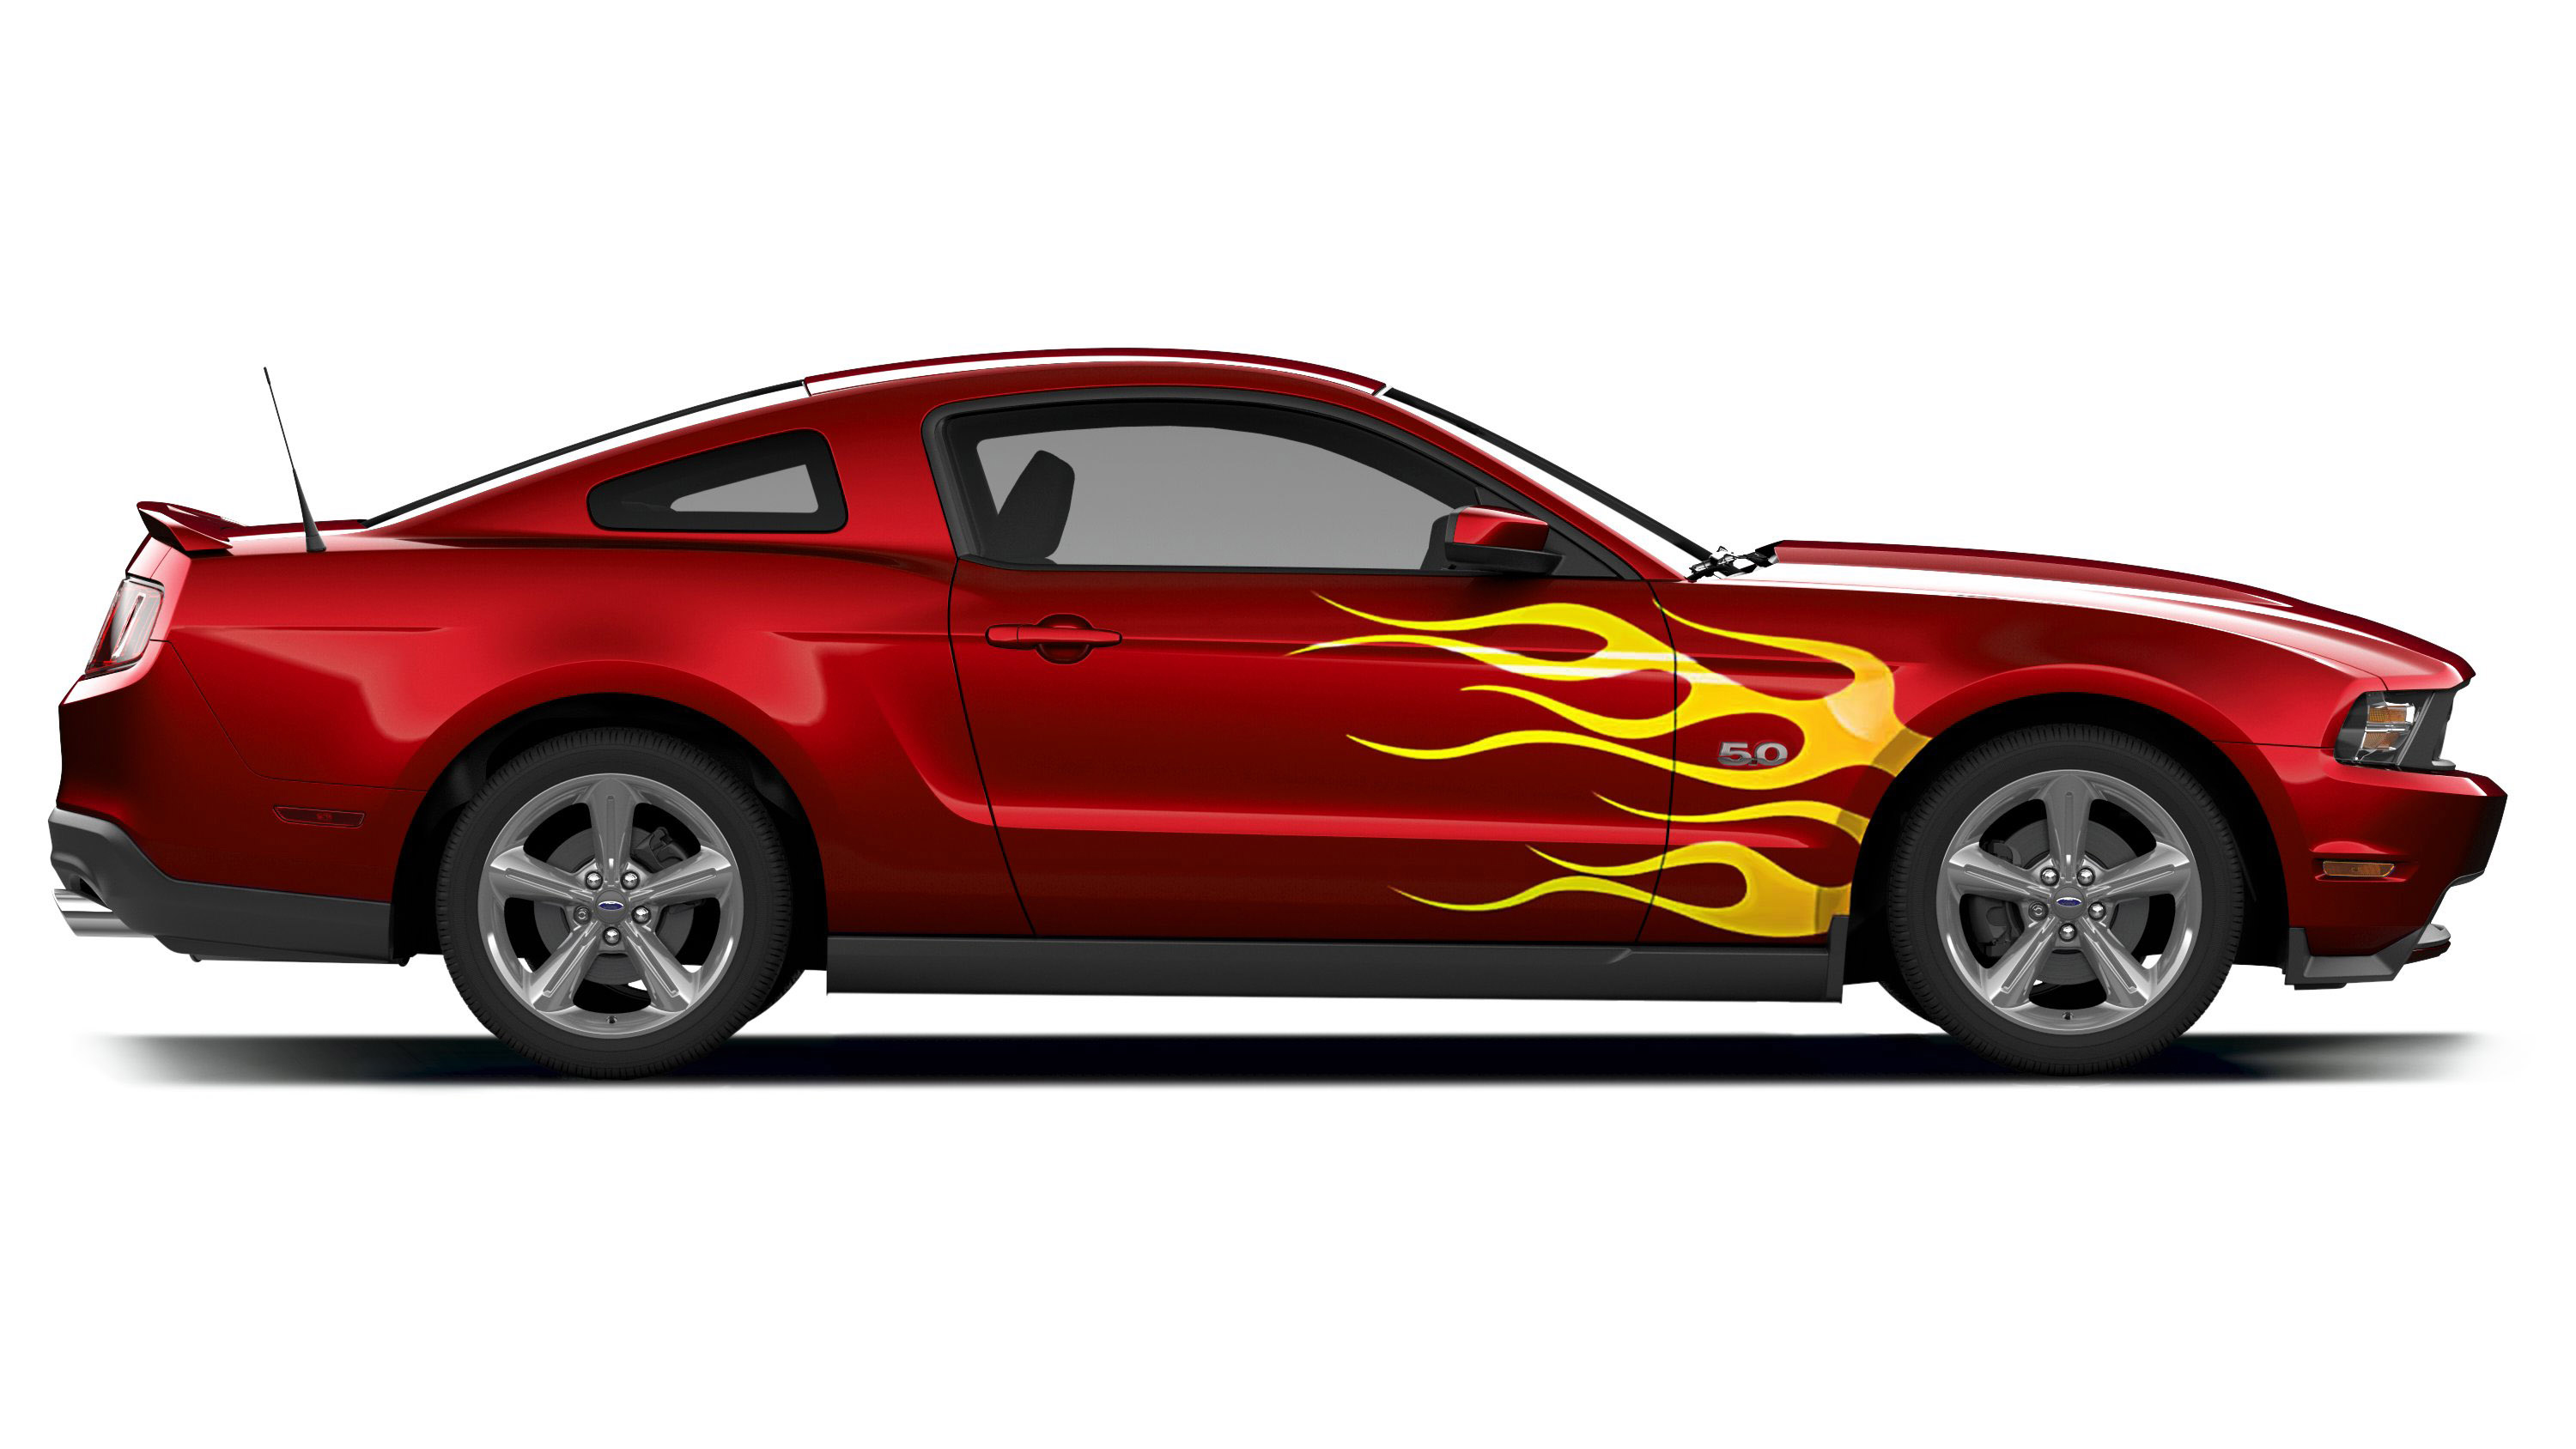 2017 ford mustang clipart clipart free Top mustang clip art free clipart image 3 – Gclipart.com clipart free